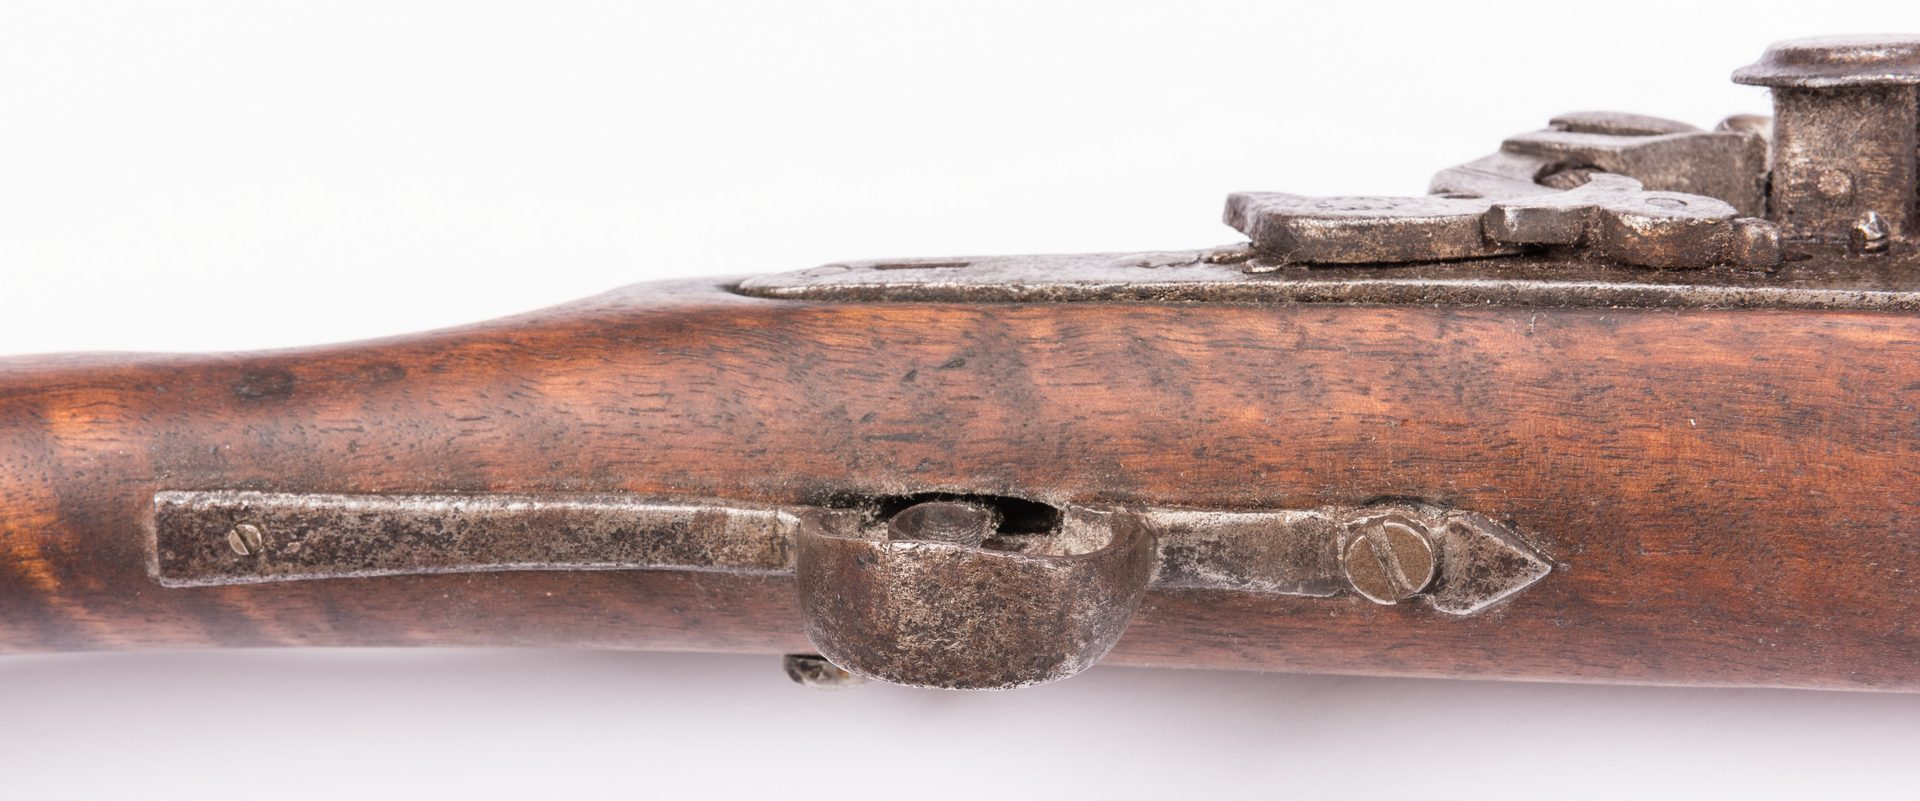 Lot 800: Middle Eastern Snaphaunce Lock Rifle, .70 Cal.